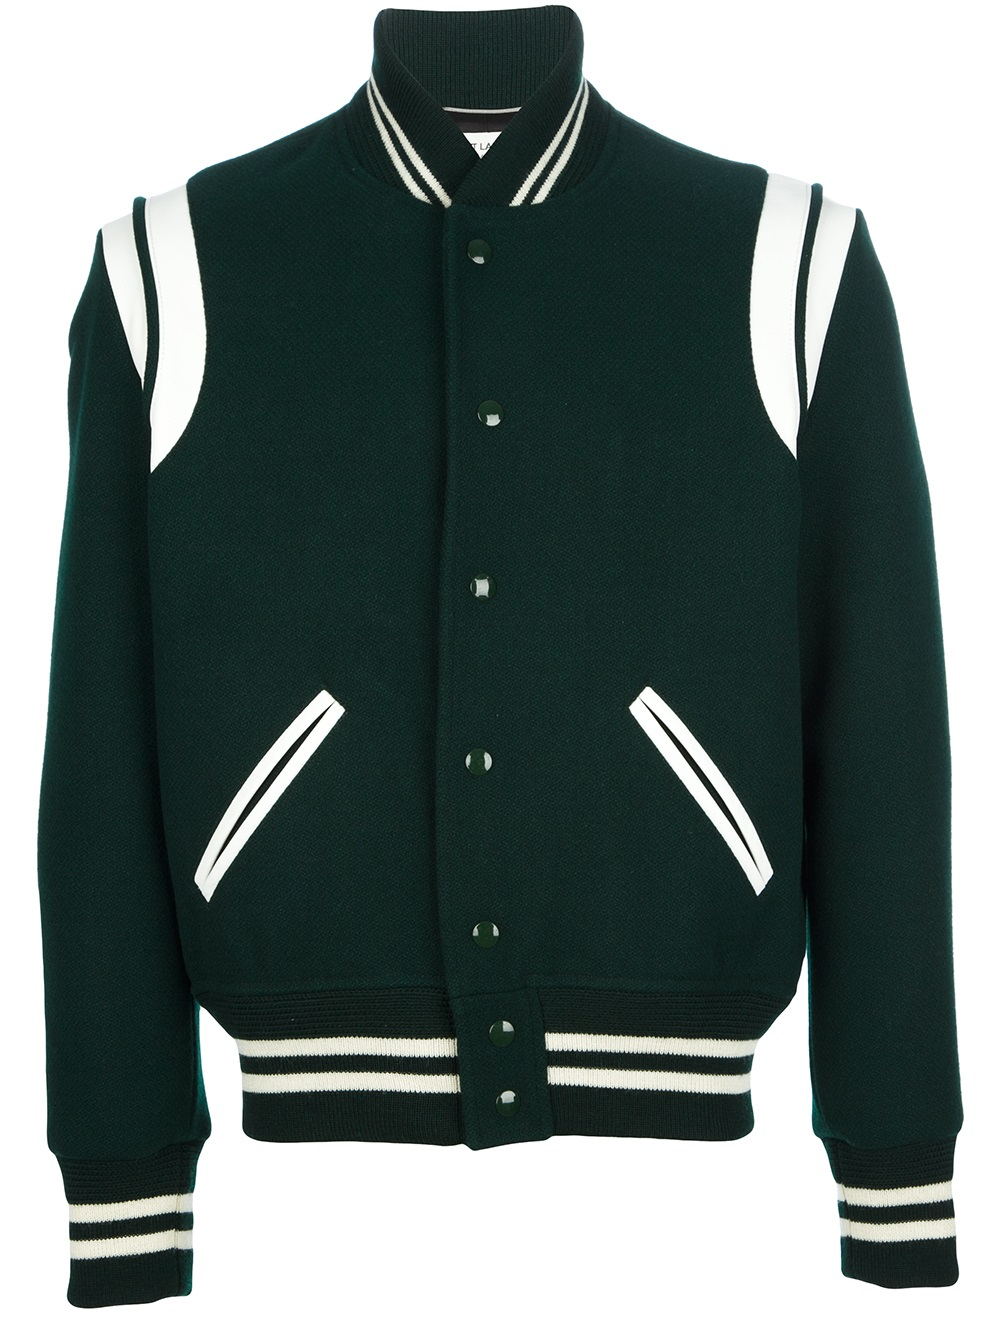 French fashion house Saint Laurent gives a Parisian twist to the classic varsity jacket with this Italian-made piece carefully crafted from a grey wool-blend cloth with black leather trim. The.